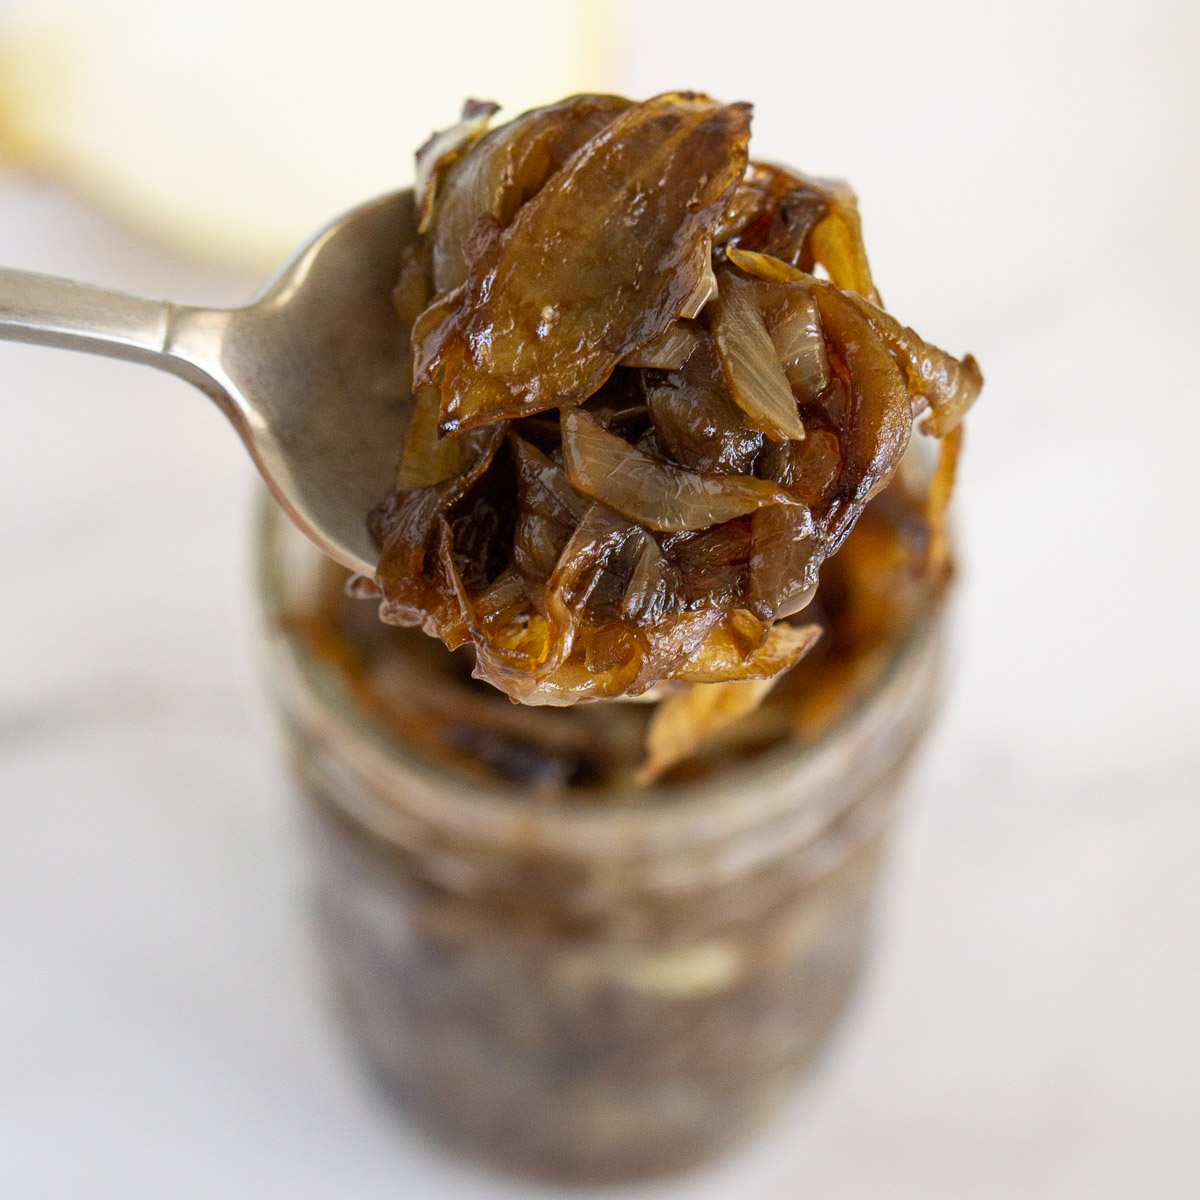 balsamic caramelized onion in a jar